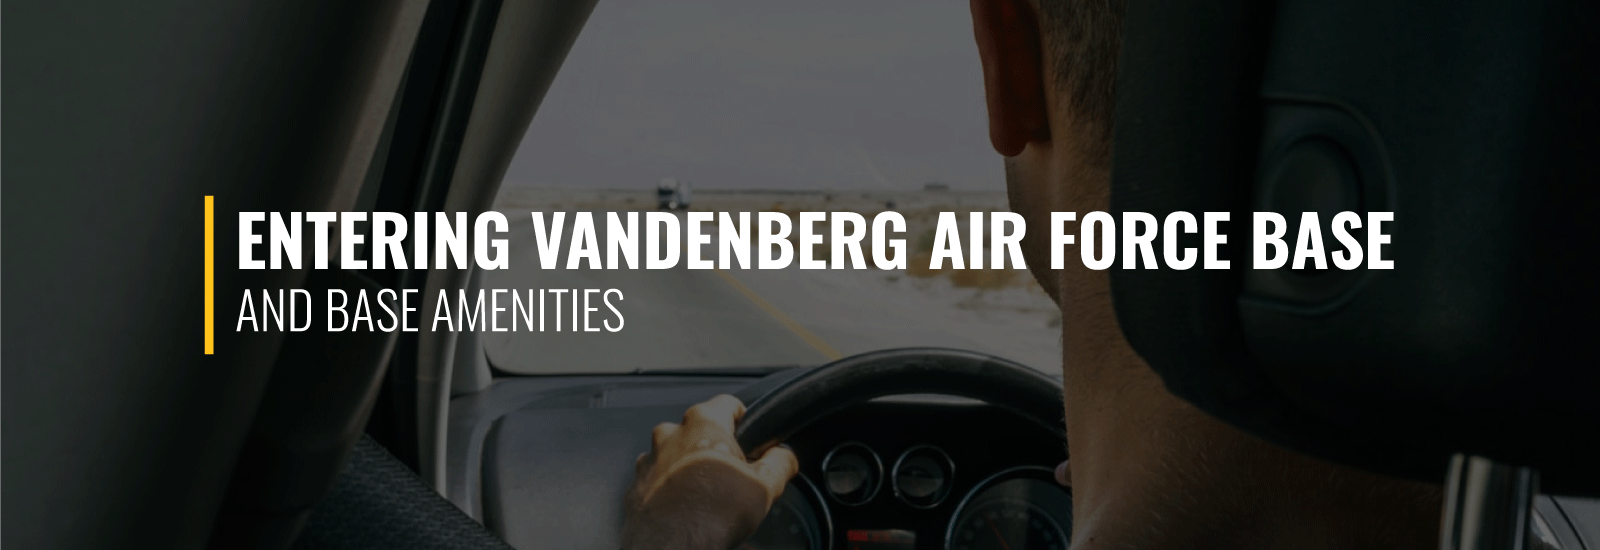 Entering Vandenberg AFB and Base Amenities